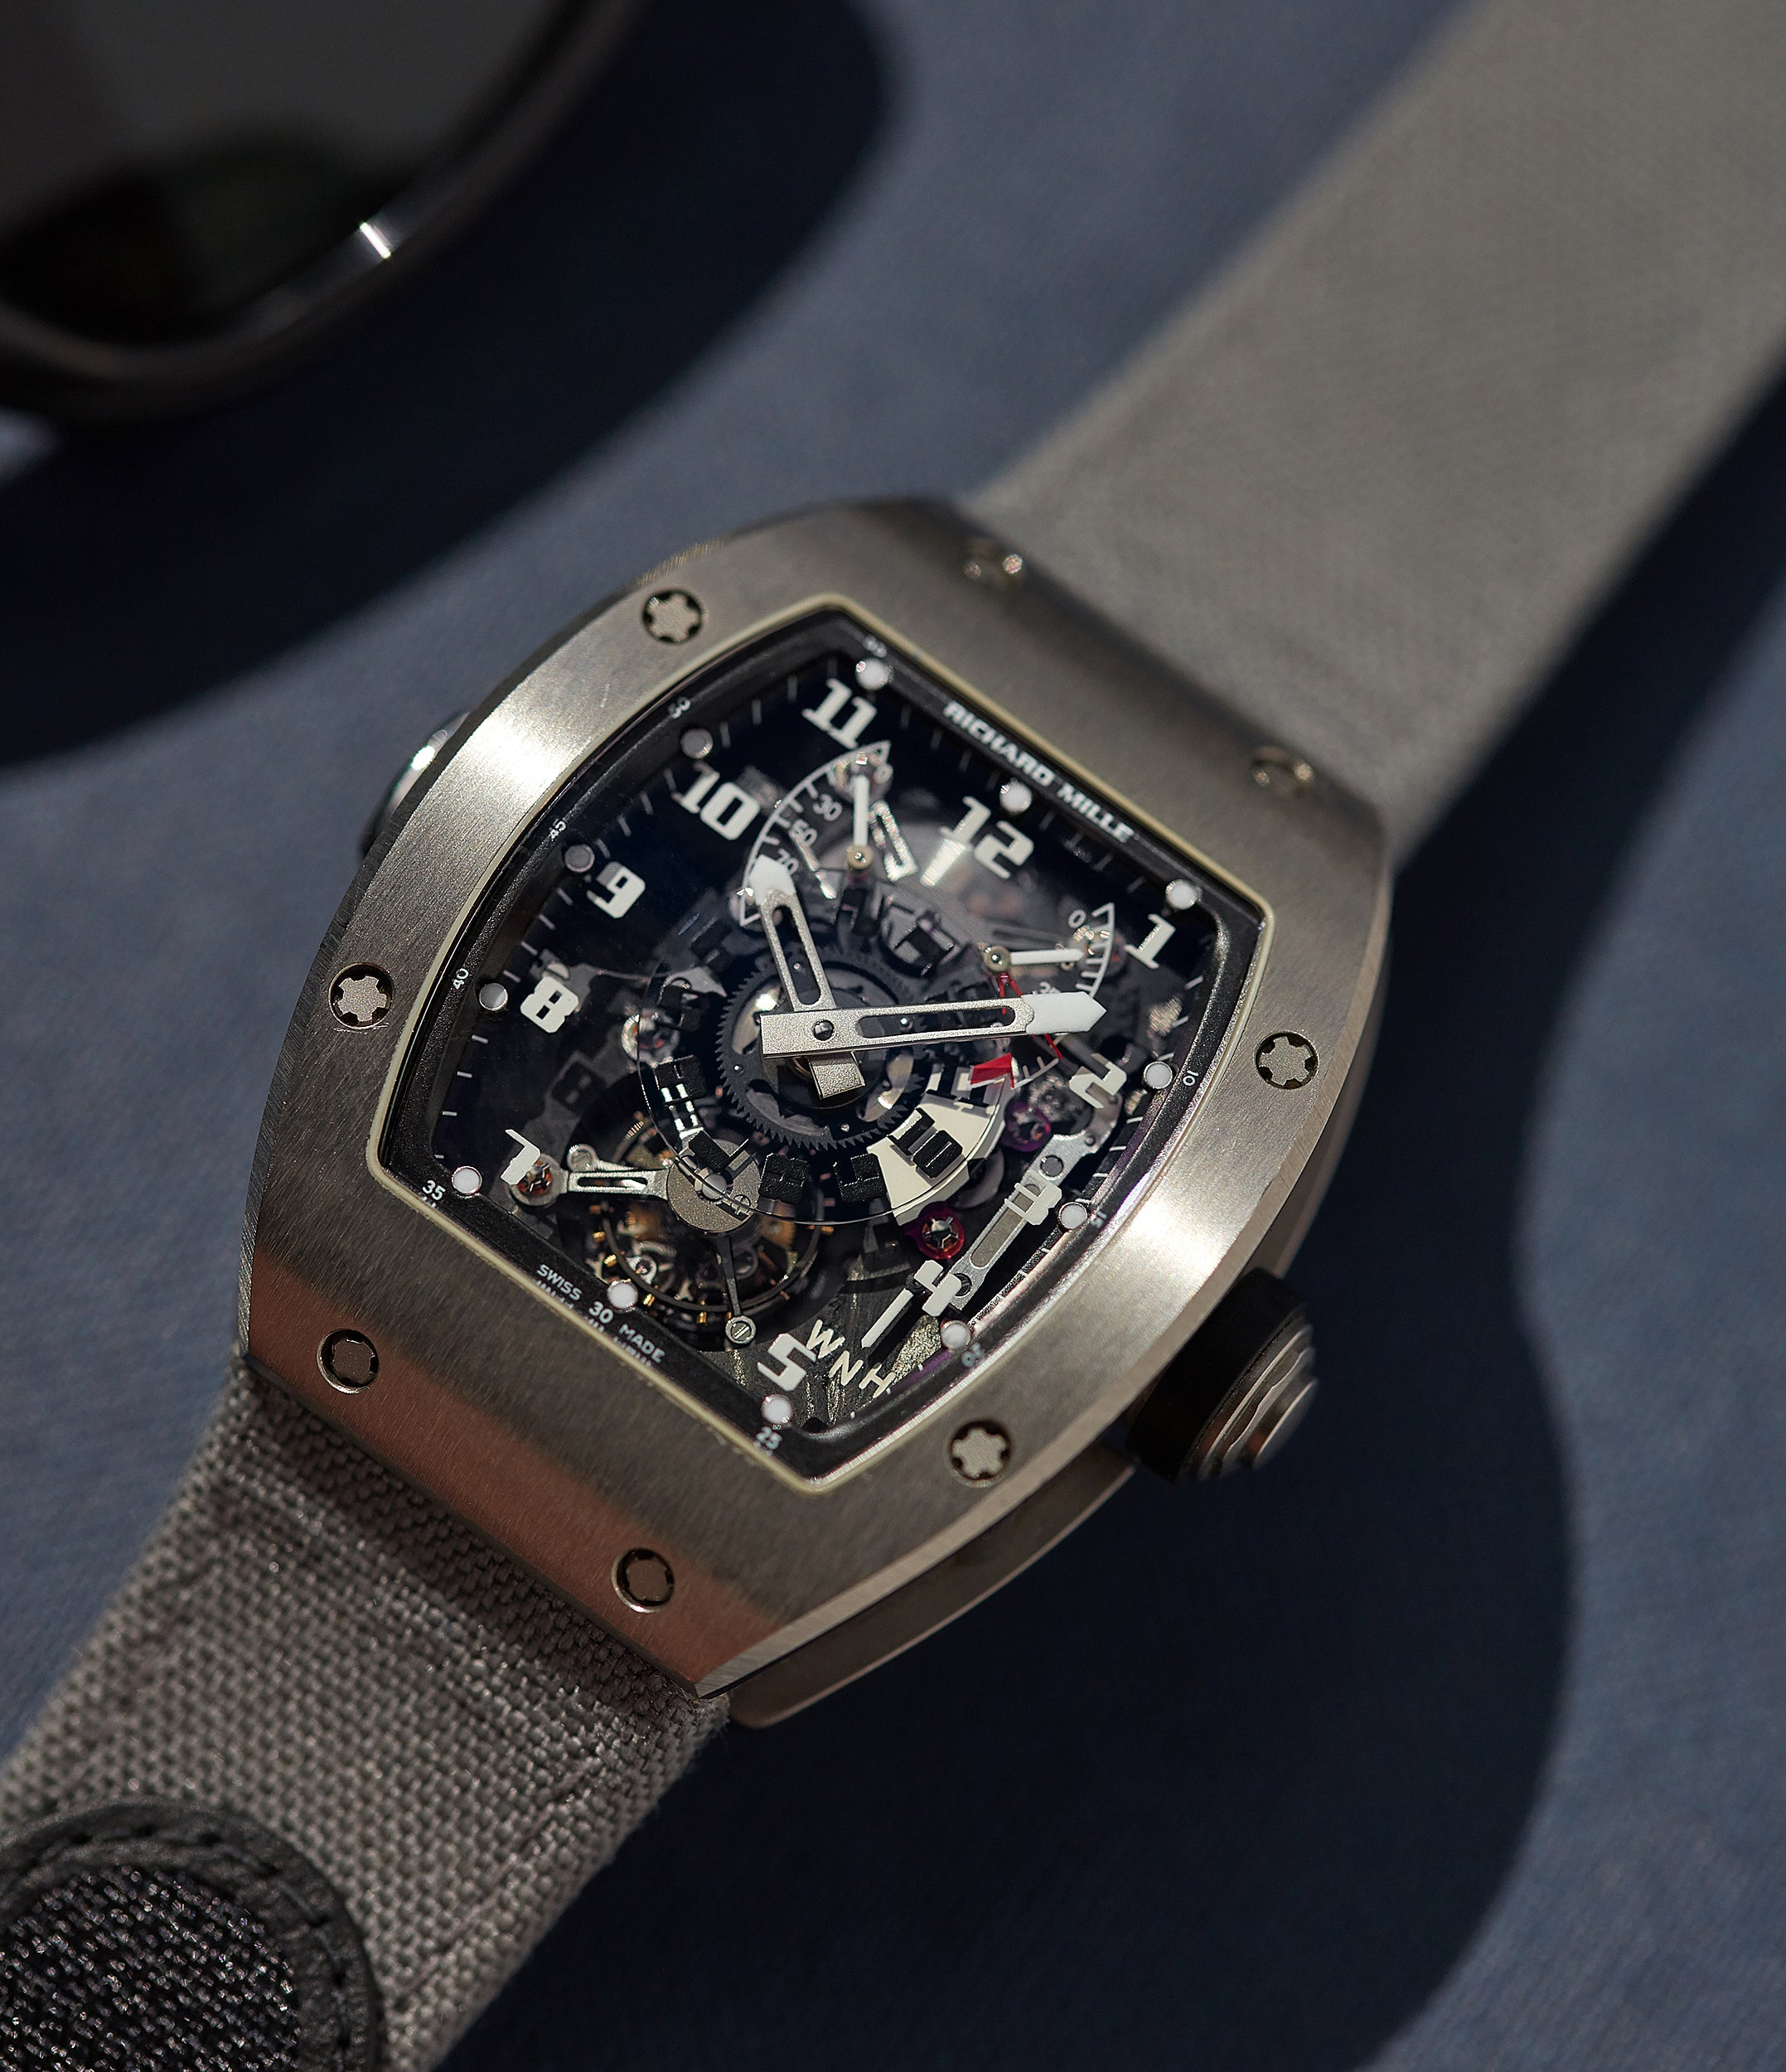 hand-finished RM003-V2 movement Richard Mille titanium tourbillon dual-time pre-owned rare independent watchmaker sports traveller watch for sale online at A Collected Man London UK specialist of rare watches